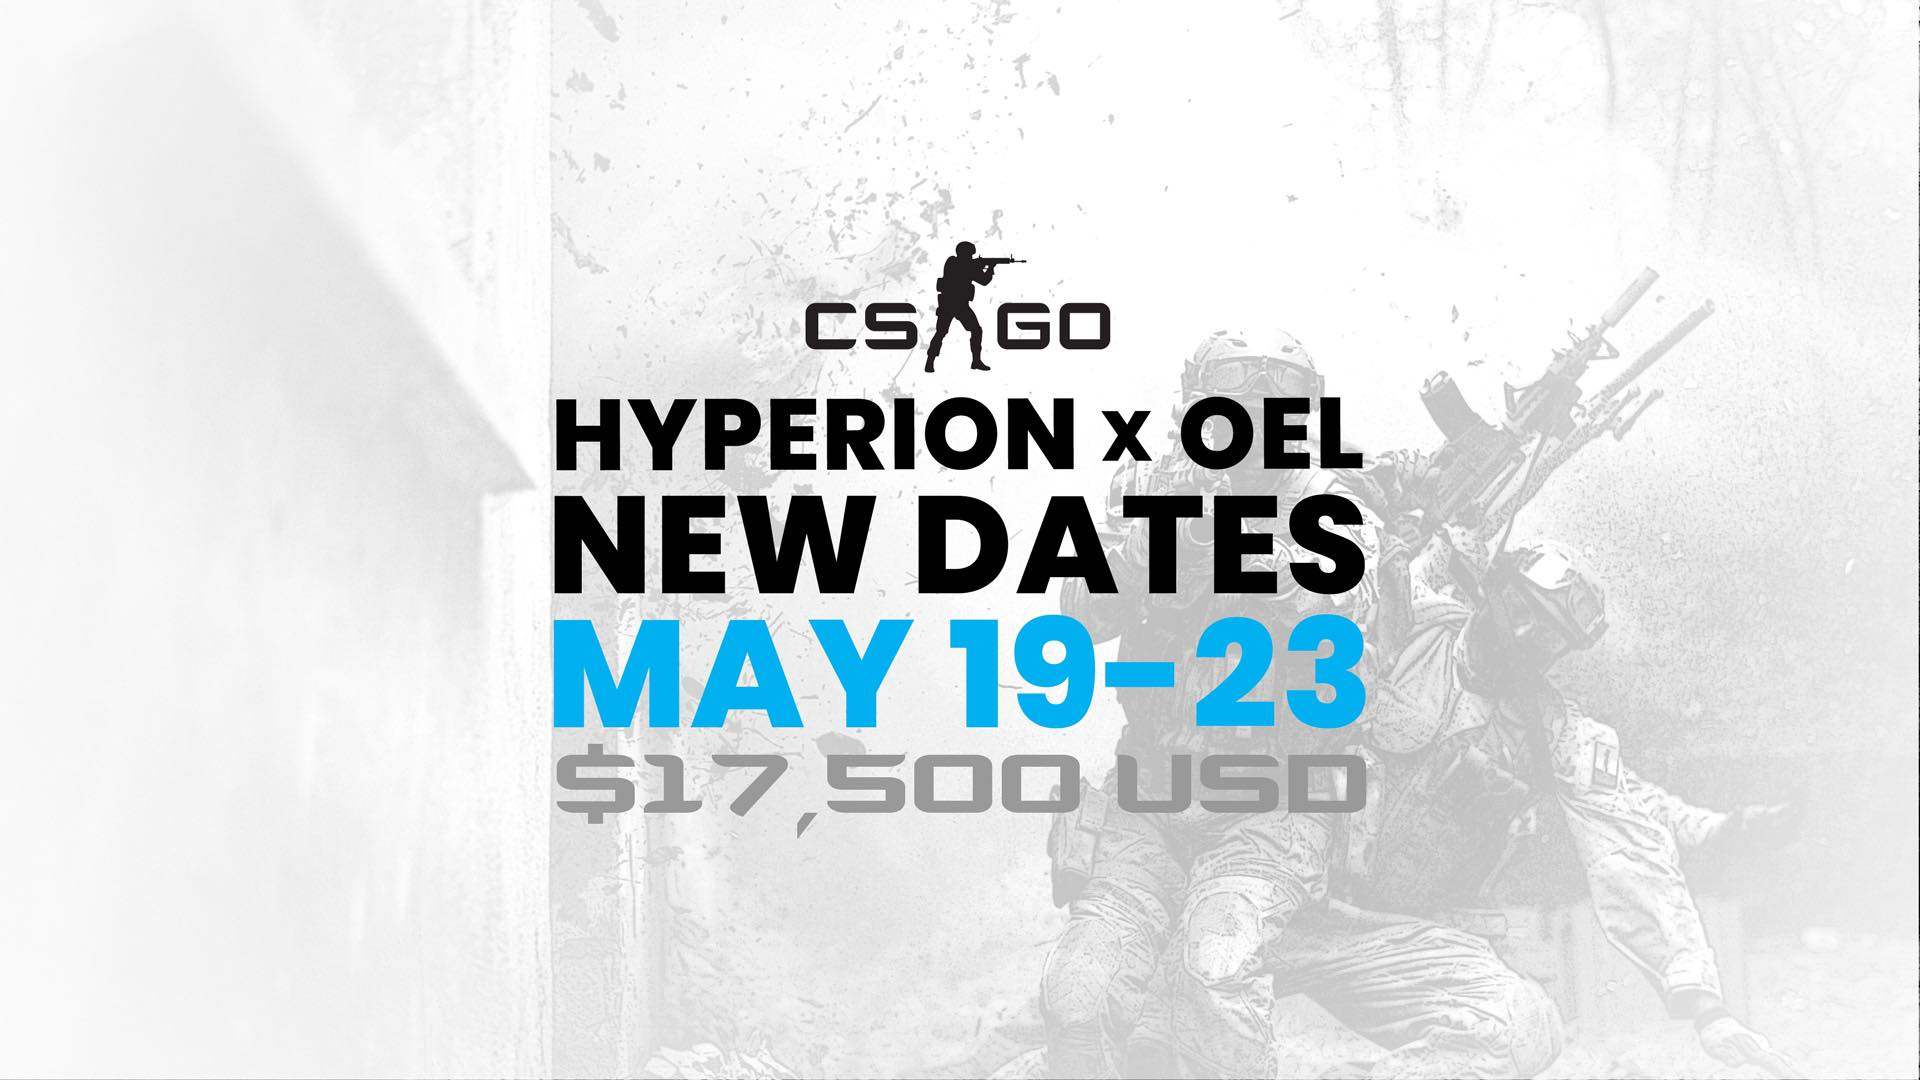 This Is Your Last Chance To Join The Hyperion x OEL CS:GO Launch